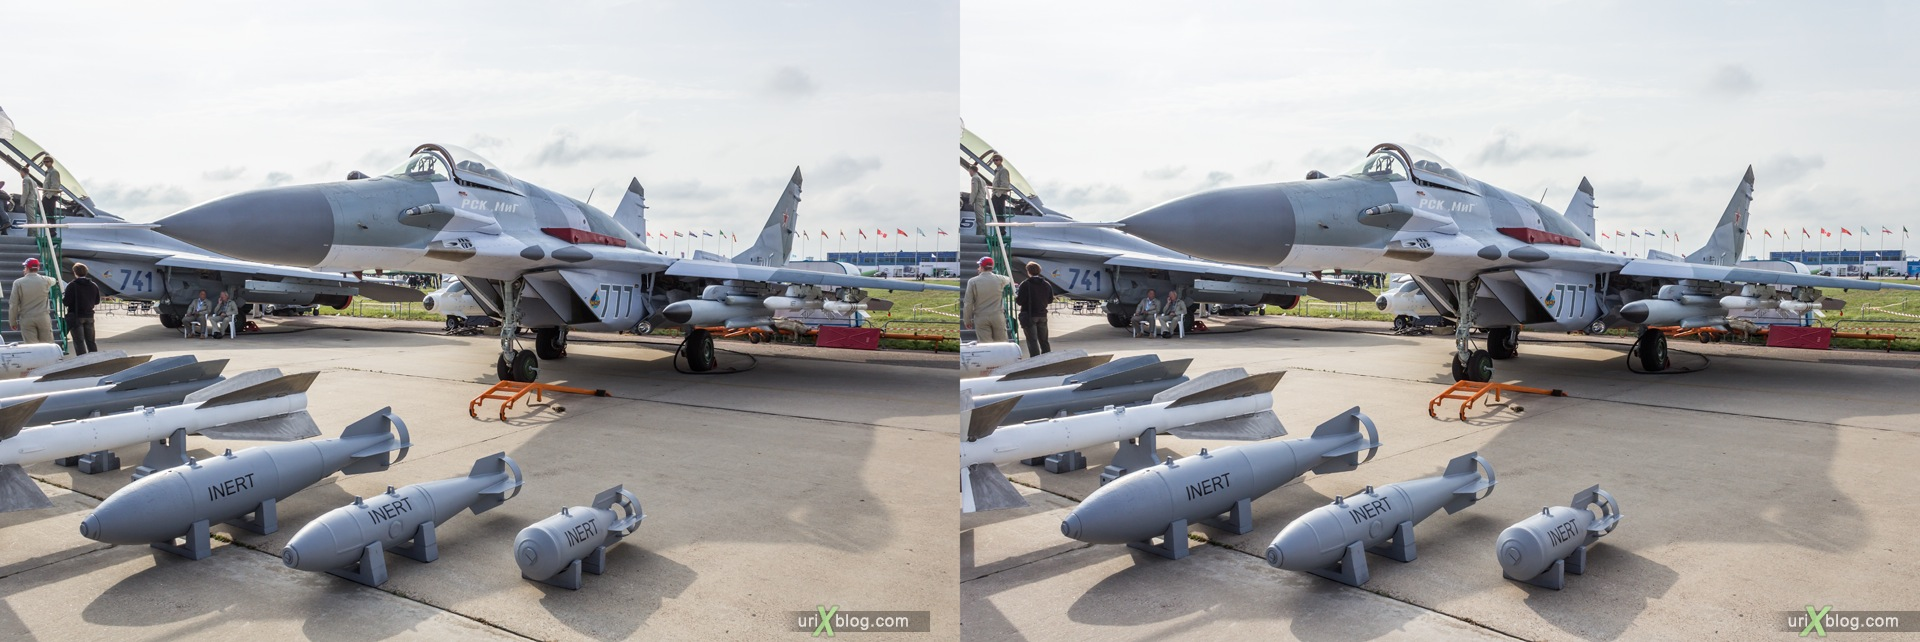 2013, MiG-29SMT, MAKS, International Aviation and Space Salon, Russia, Soviet, USSR, Ramenskoye airfield, airplane, 3D, stereo pair, cross-eyed, crossview, cross view stereo pair, stereoscopic